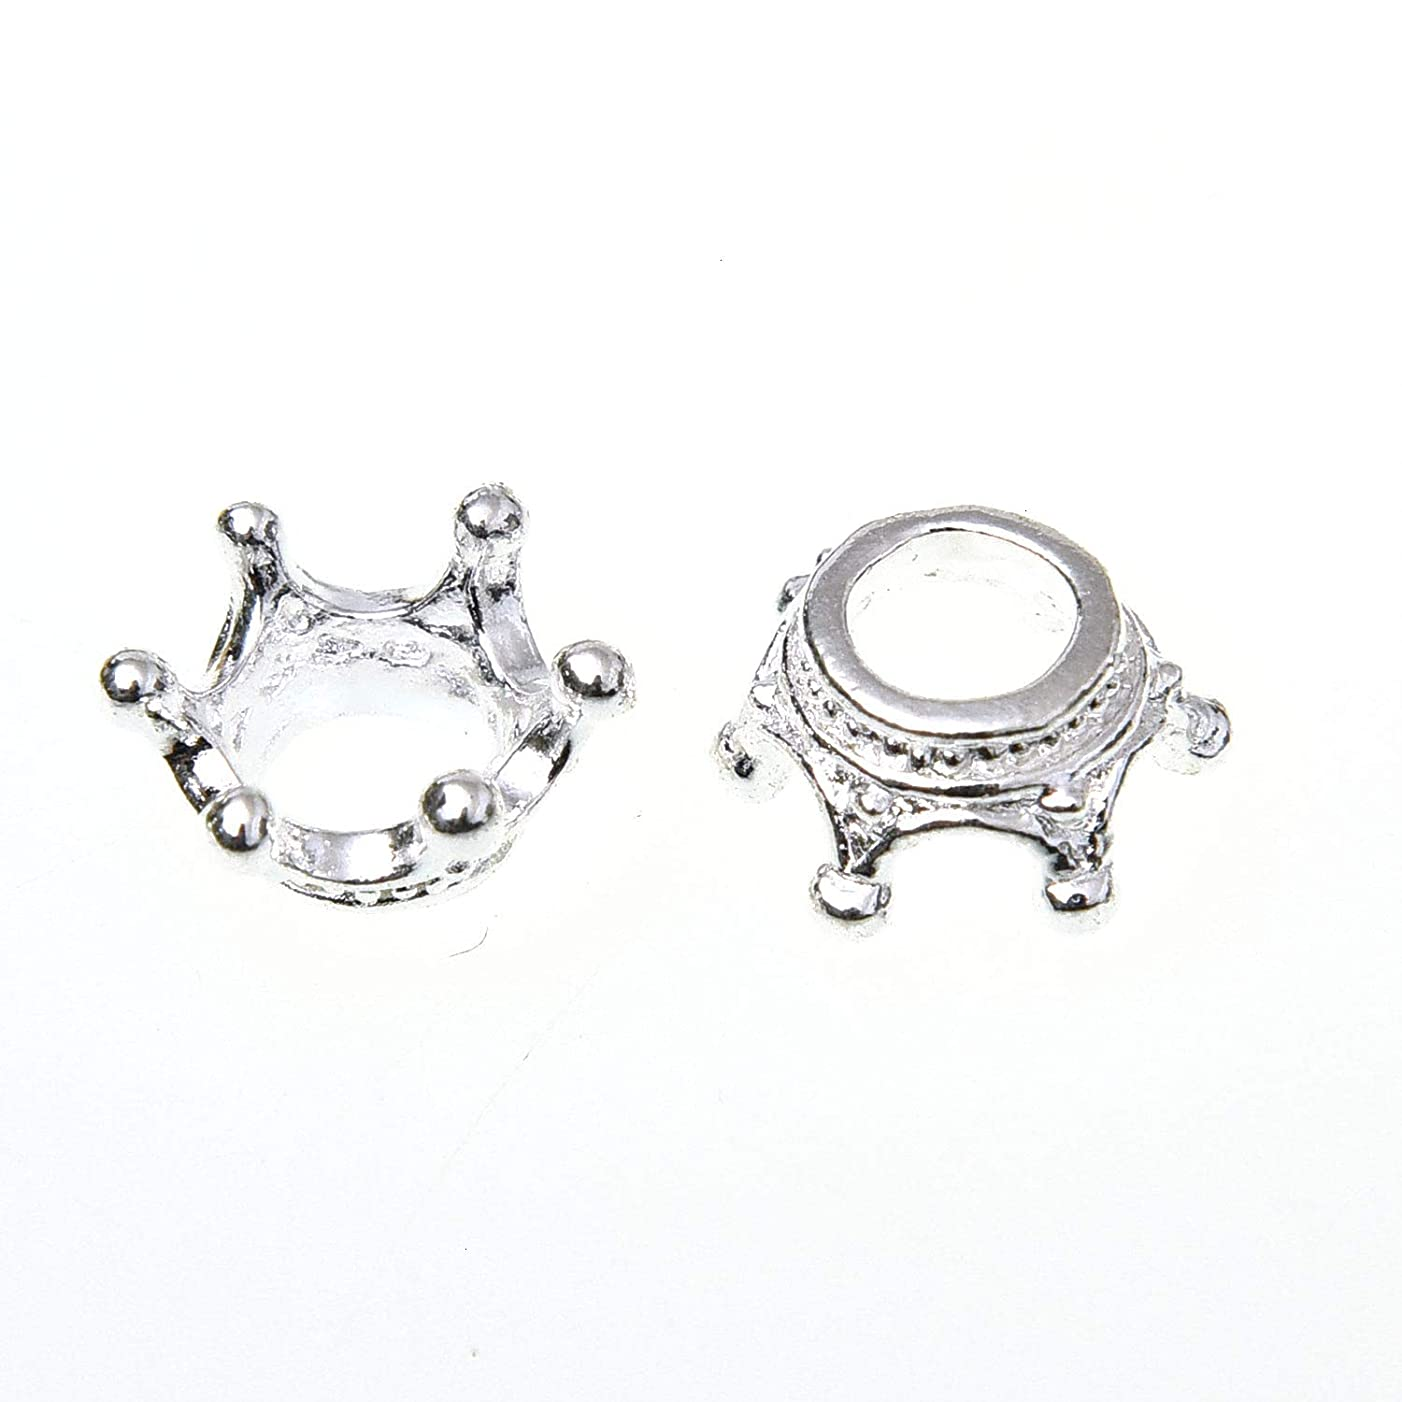 Monrocco 100Pcs Mini Lovely Alloy Crown Charms Pendants DIY Vintage Charms Findings Pendant for Jewelry Making Necklace Bracelet DIY,12 x 6mm